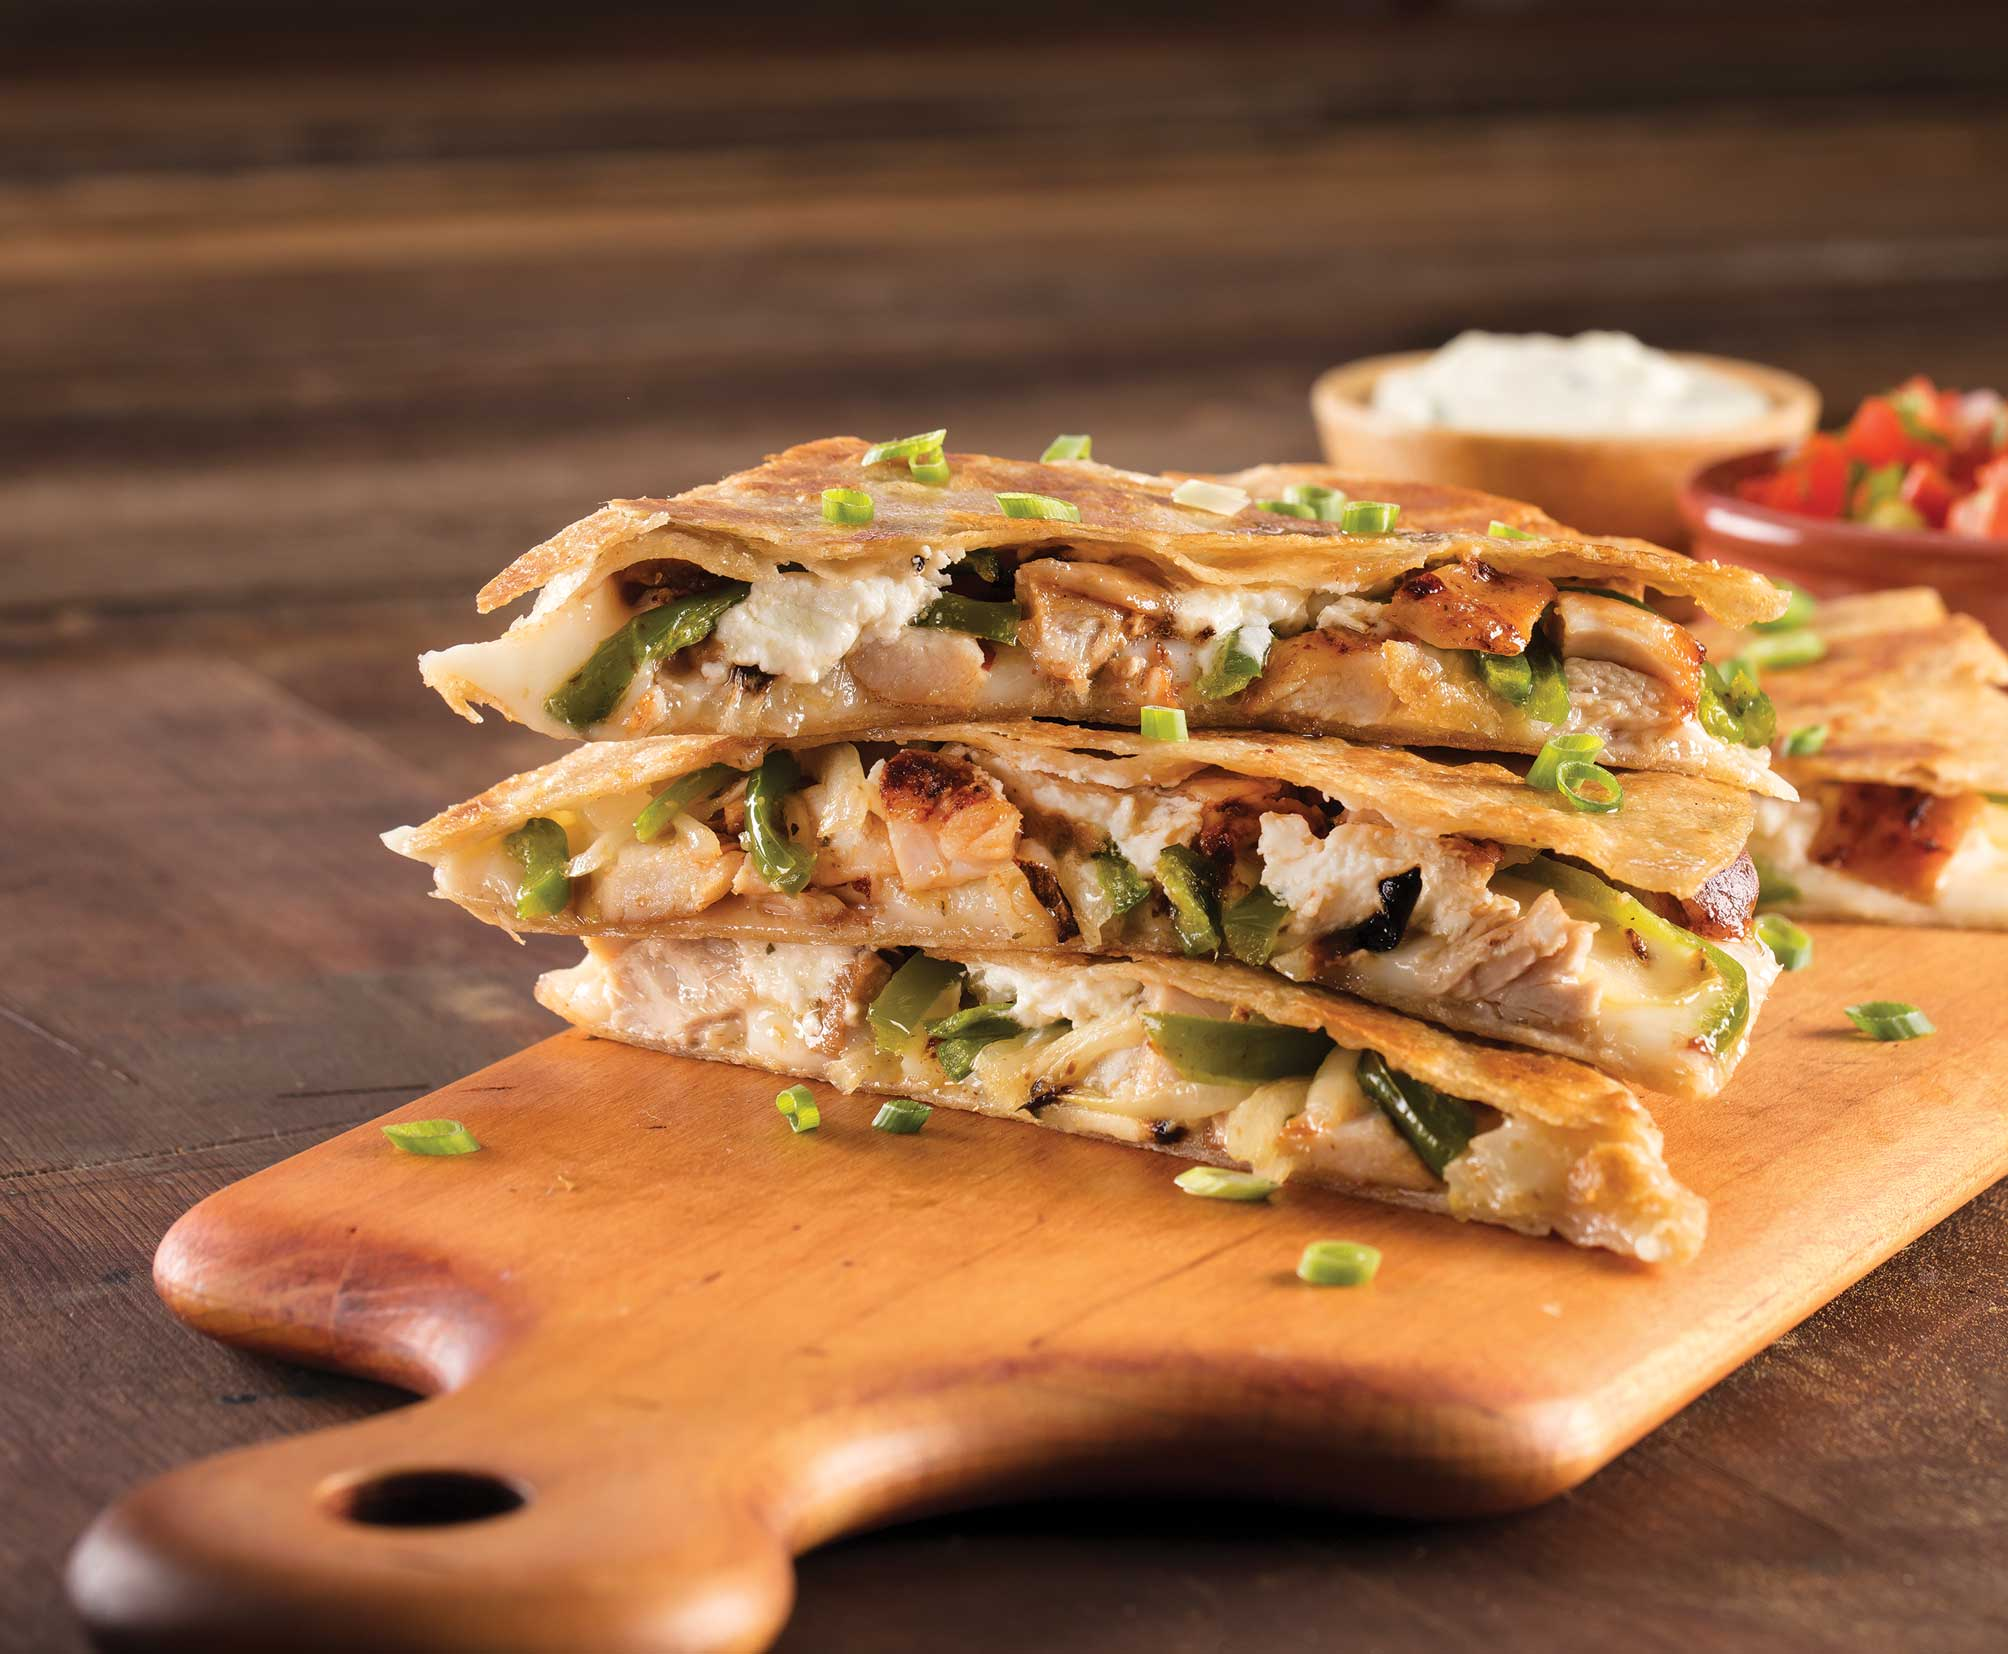 Chicken Goat Cheese Quesadilla